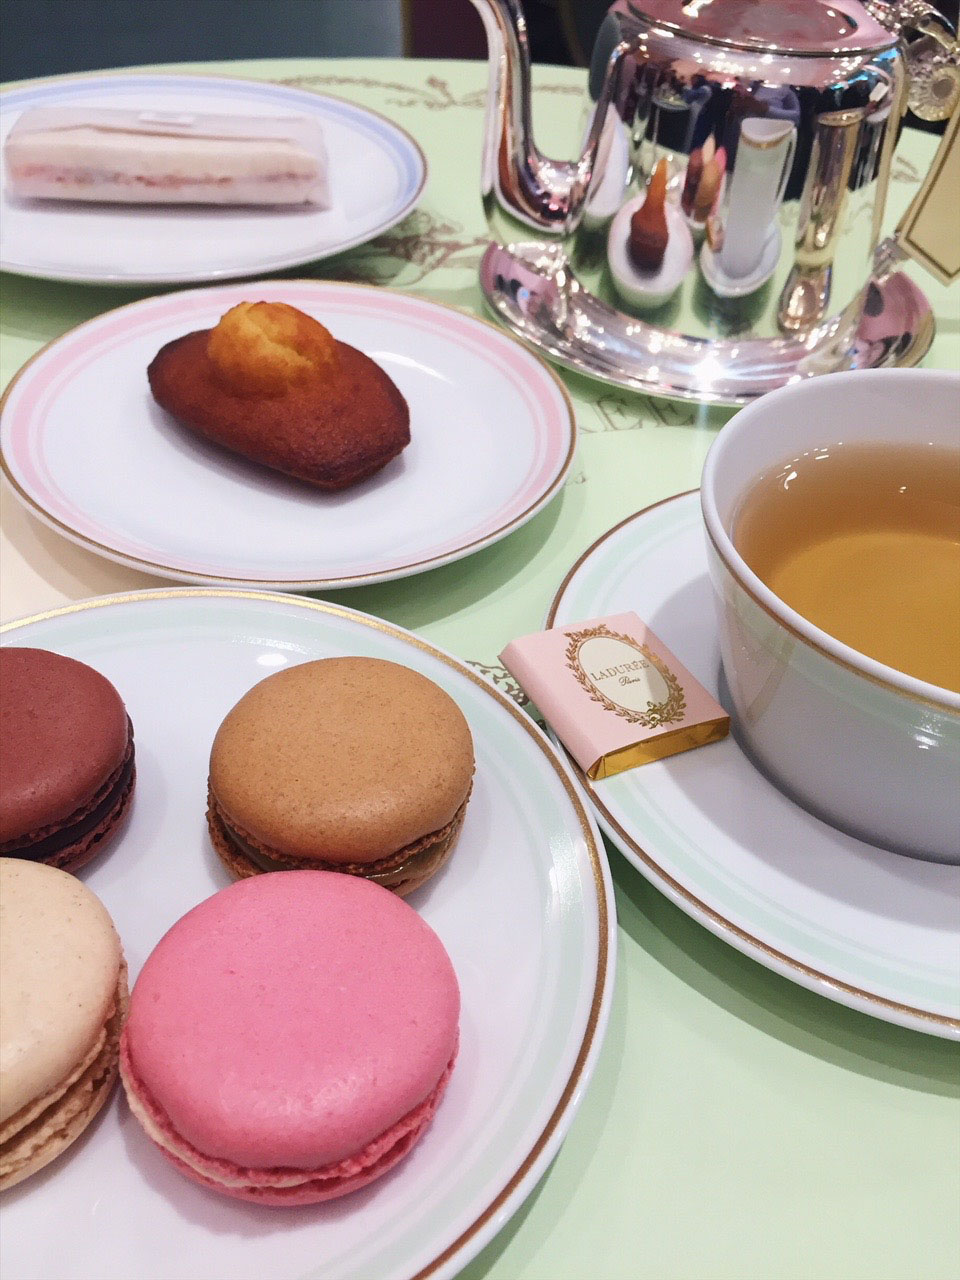 Madeleine and Macaroons at Ladurée